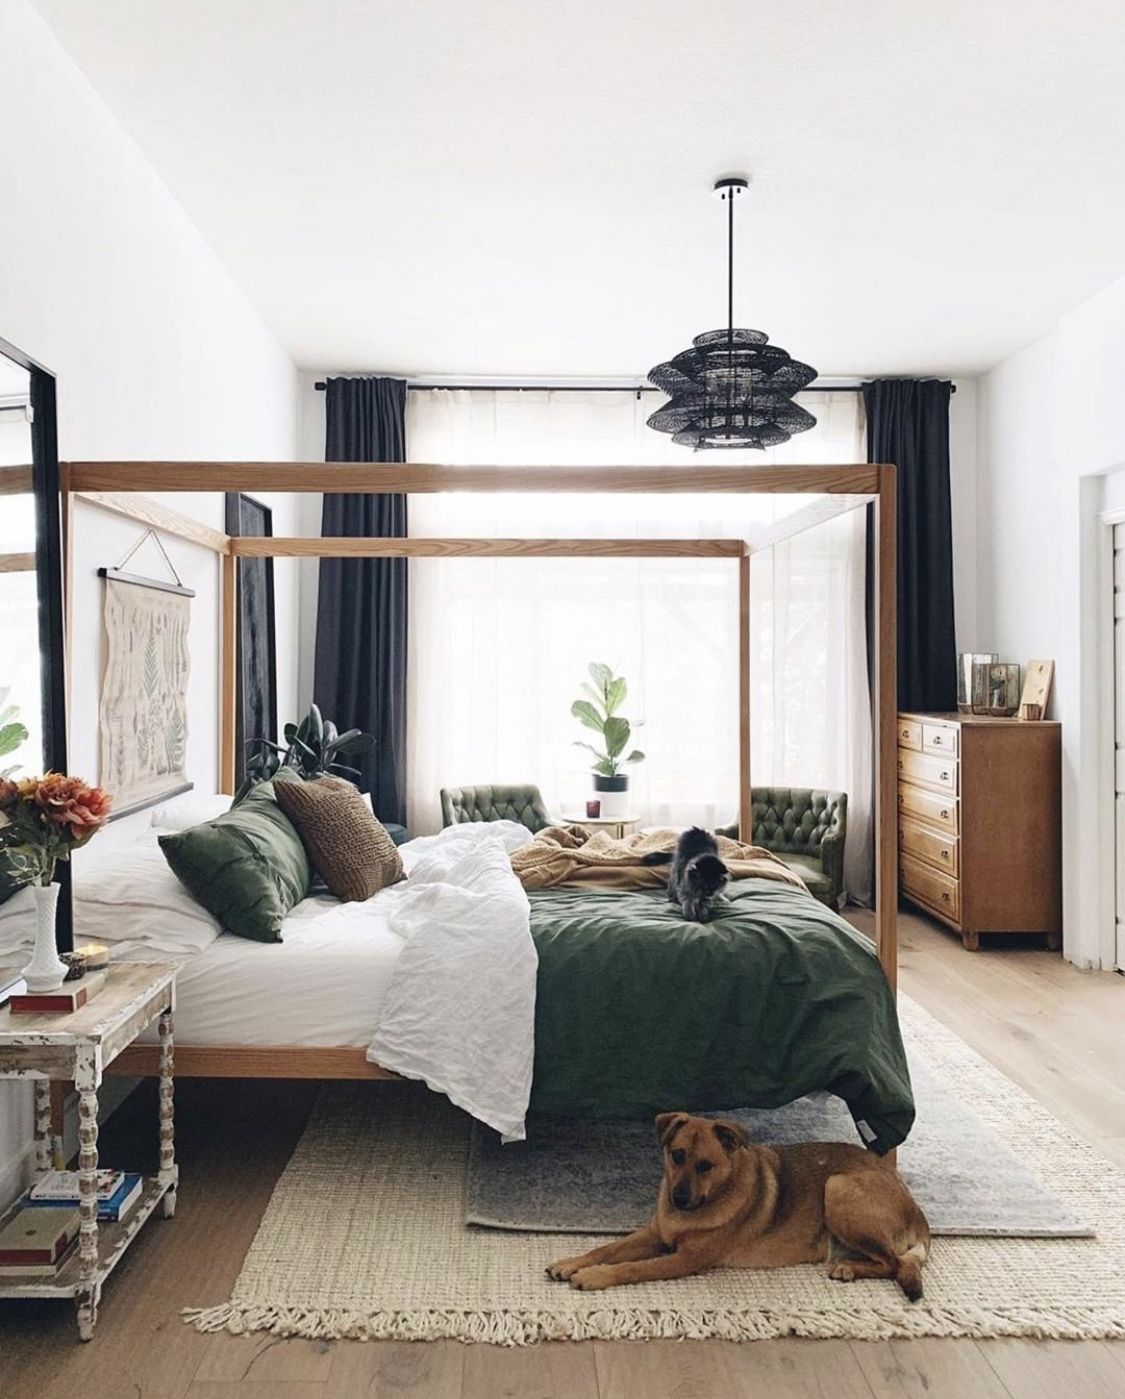 Pin by Can She on h o m e in 2020 Earthy bedroom, Home